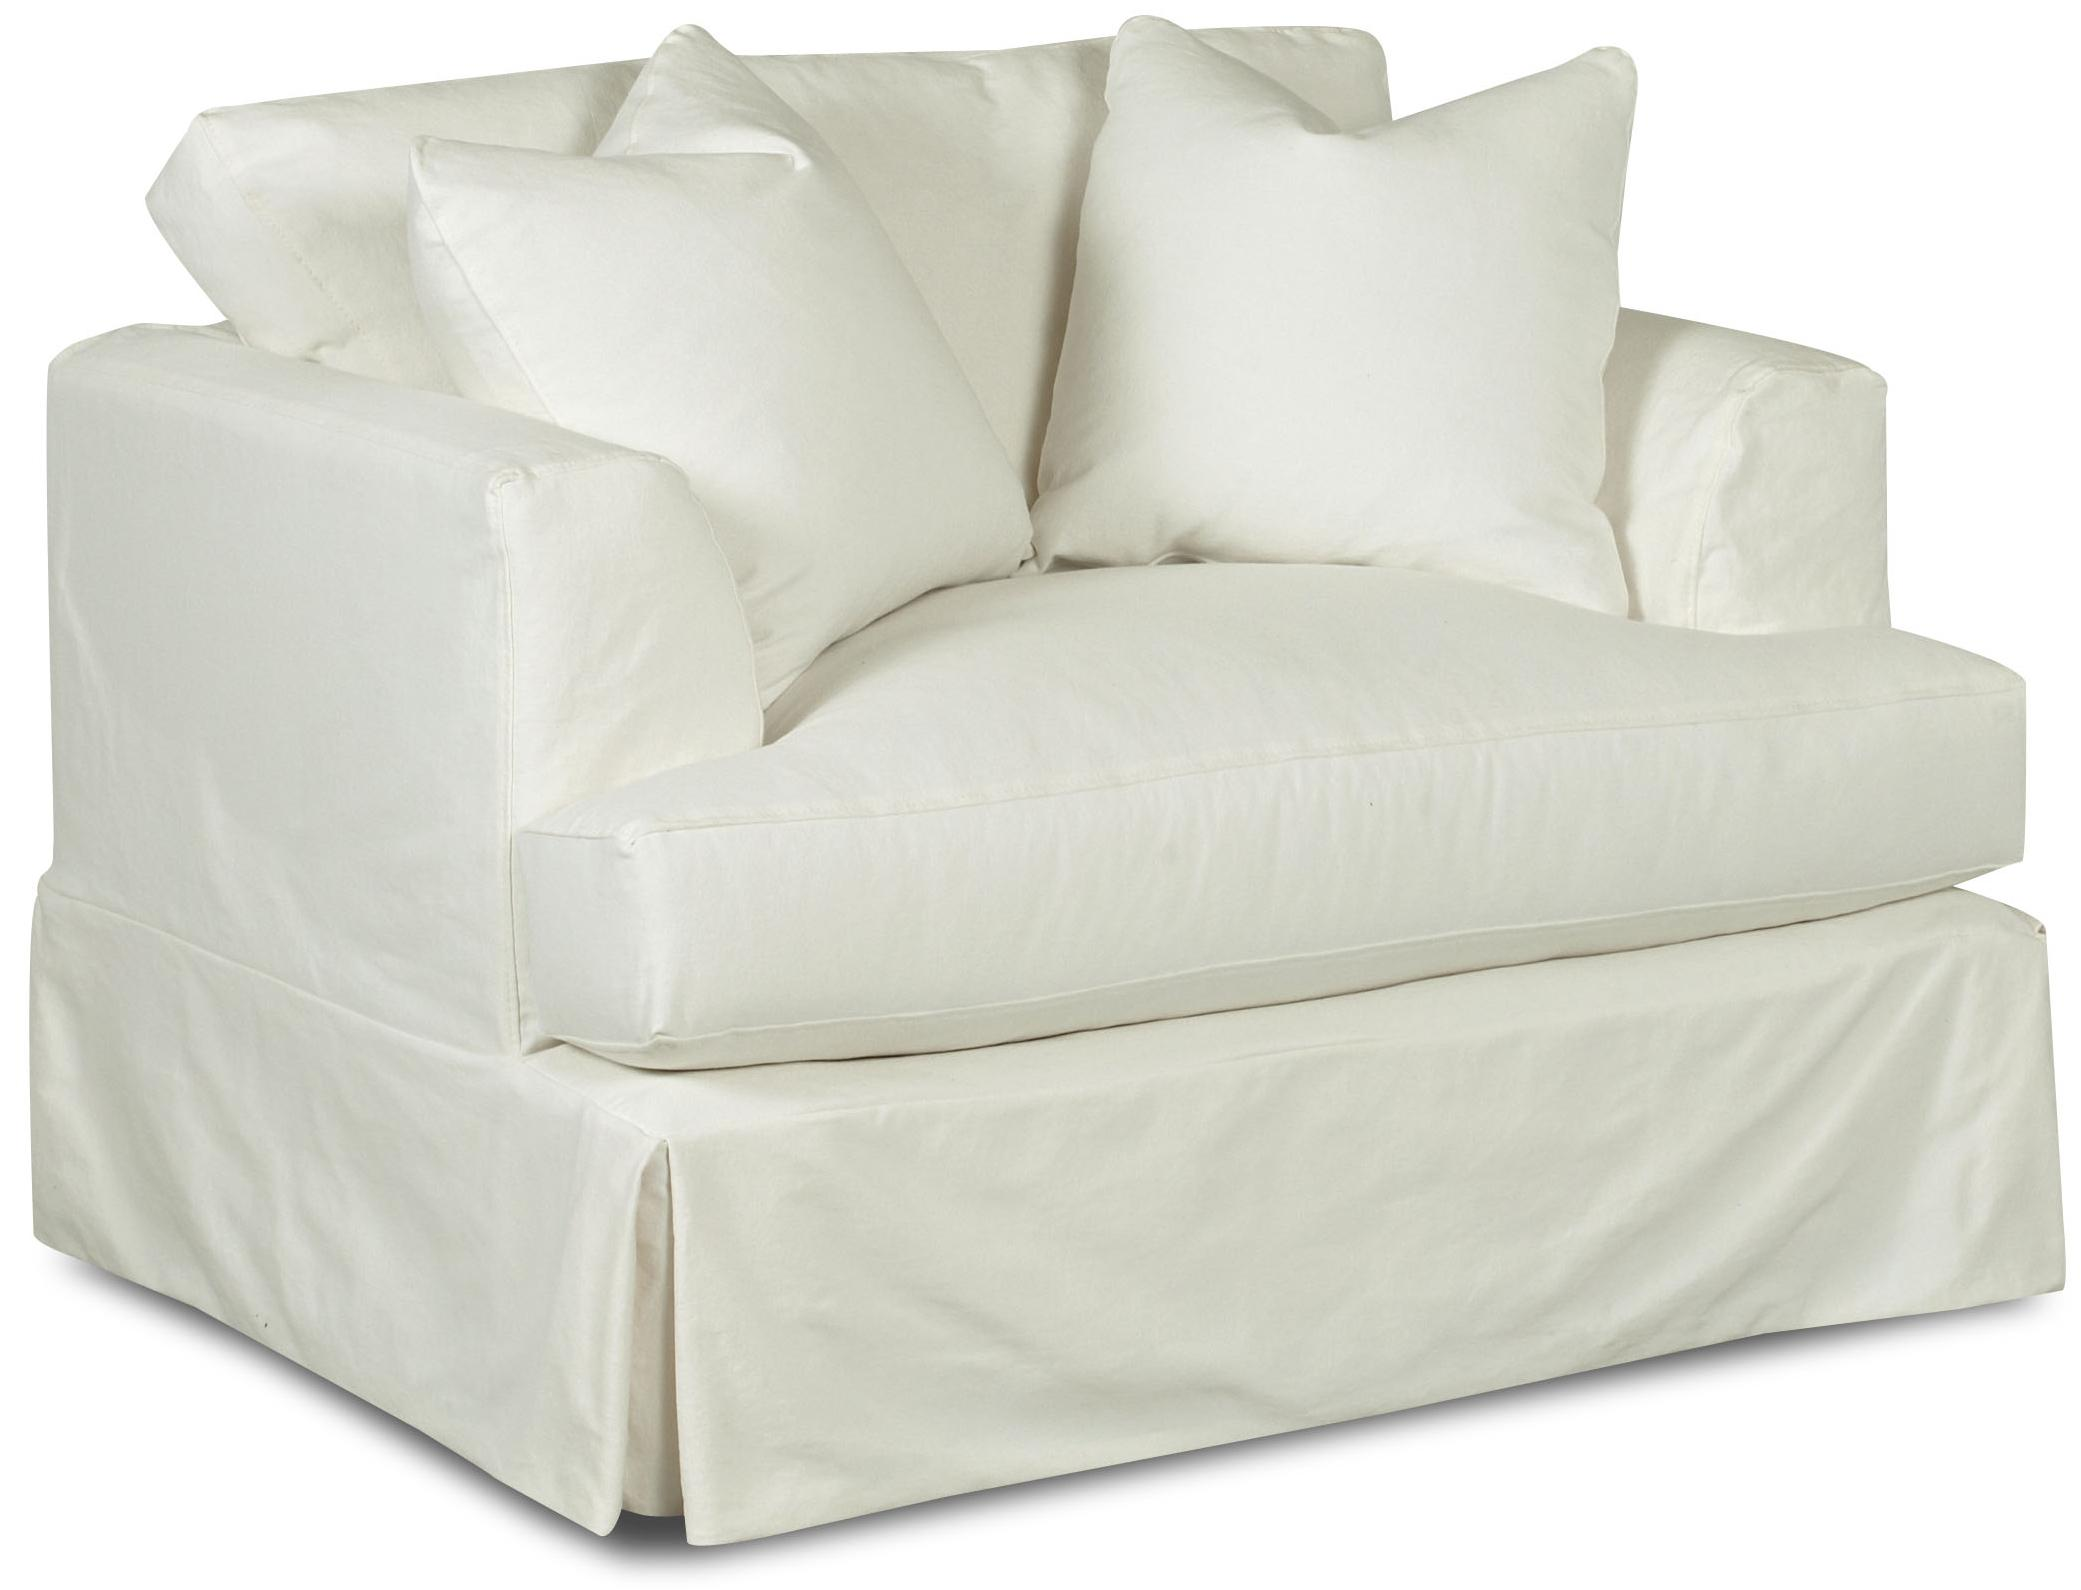 Oversized Sofa Slipcovers Living Room Furniture